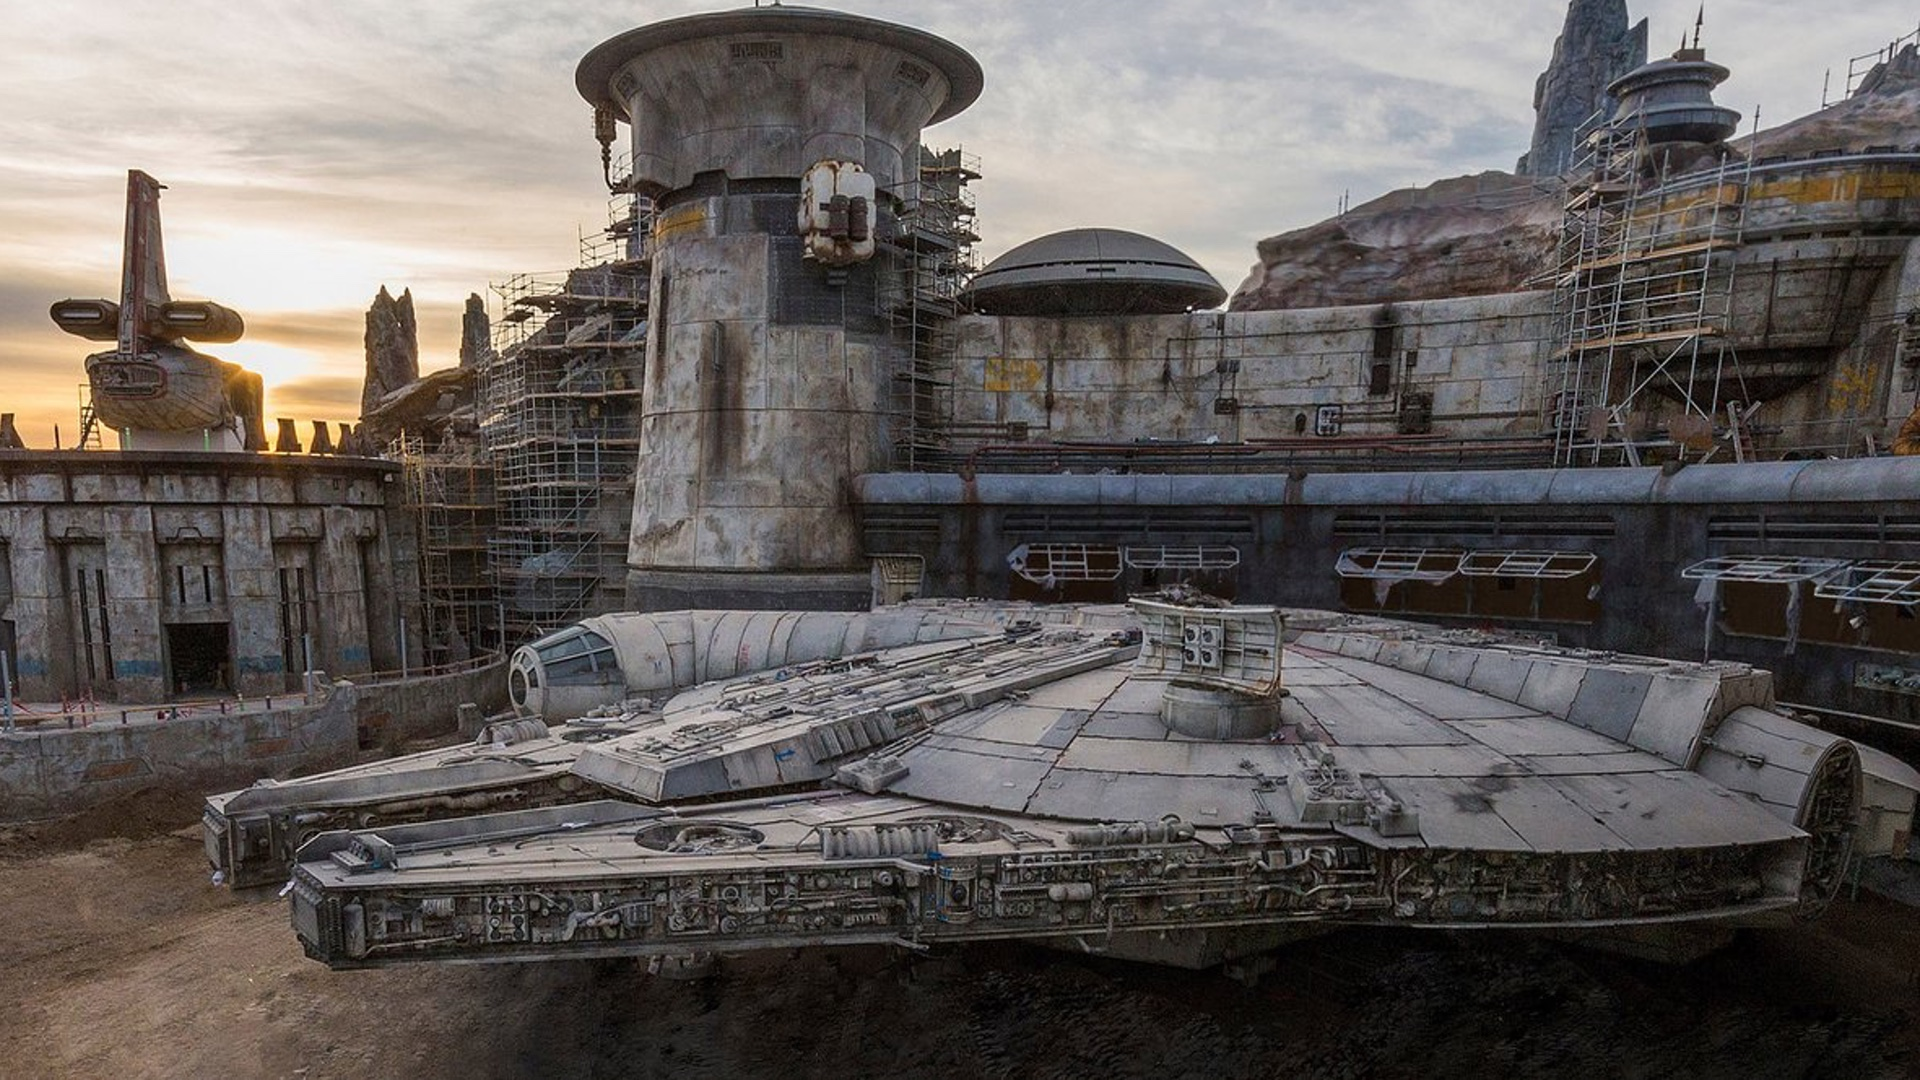 disney-shares-official-photo-of-the-millennium-falcon-at-star-wars-galaxys-edge-social.jpg